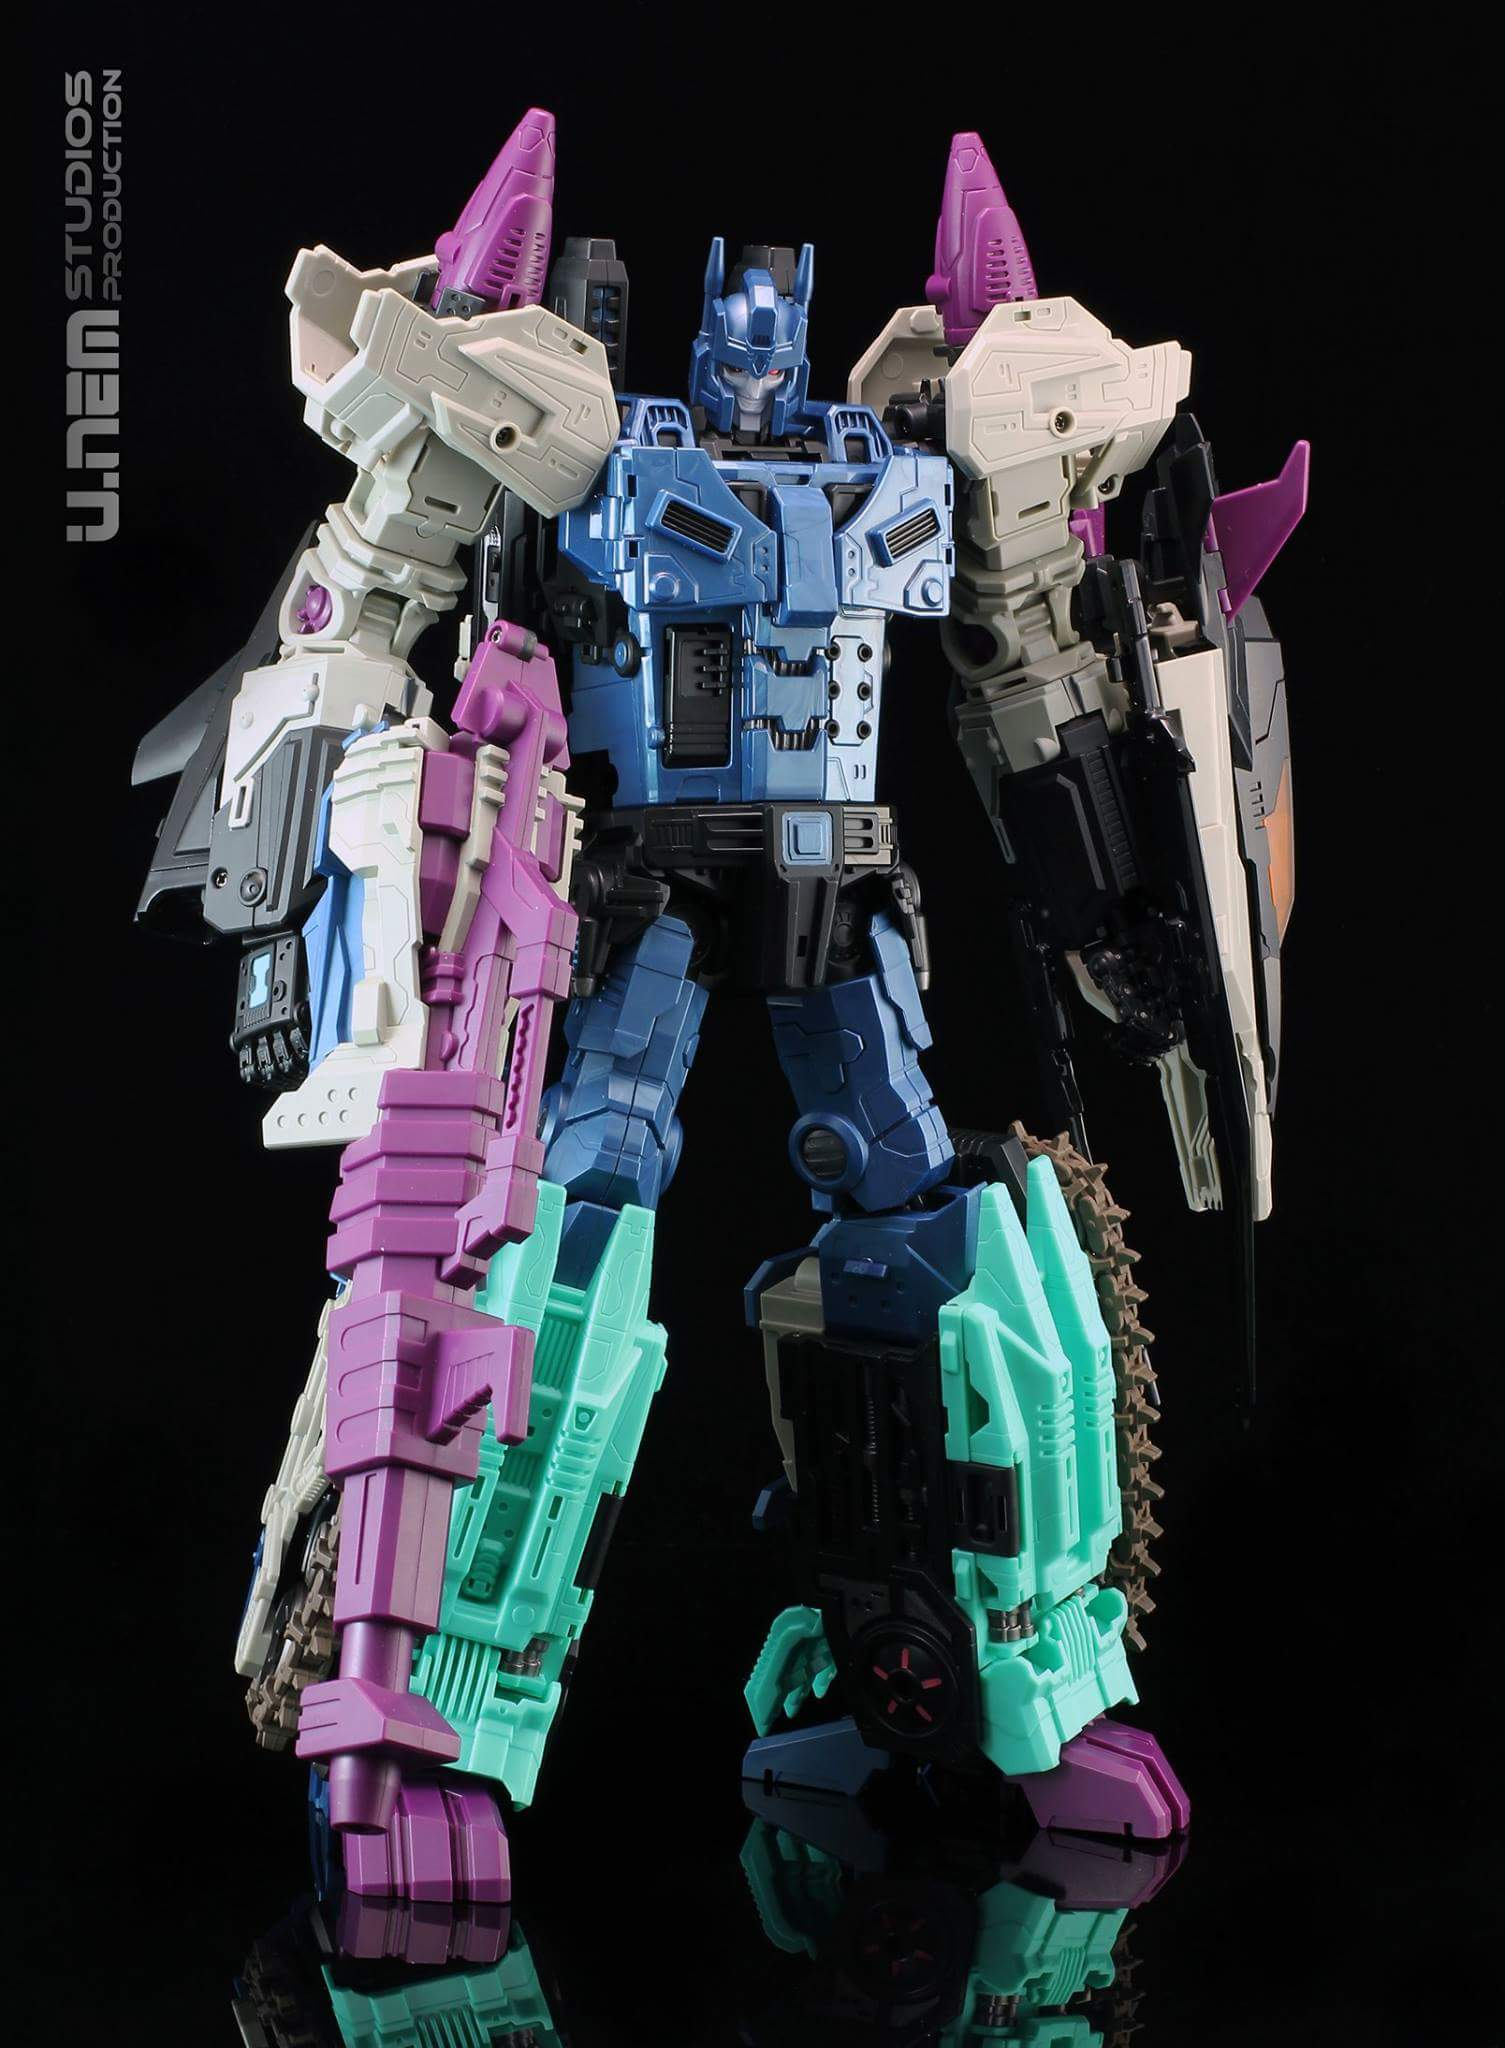 [Mastermind Creations] Produit Tiers - R-17 Carnifex - aka Overlord (TF Masterforce) - Page 2 FvkPYuHb